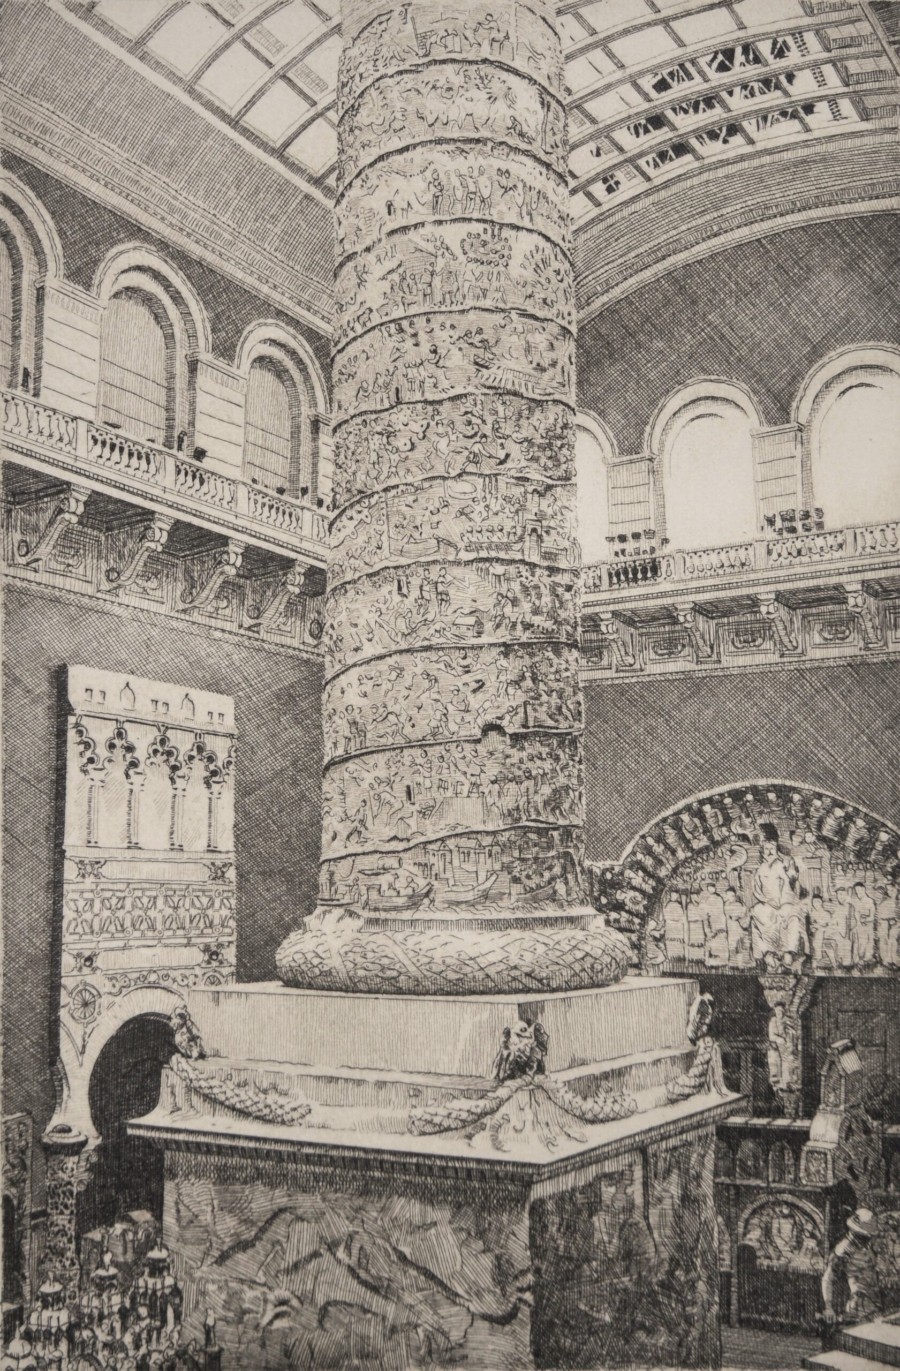 Etching of the plaster room at the V&A London